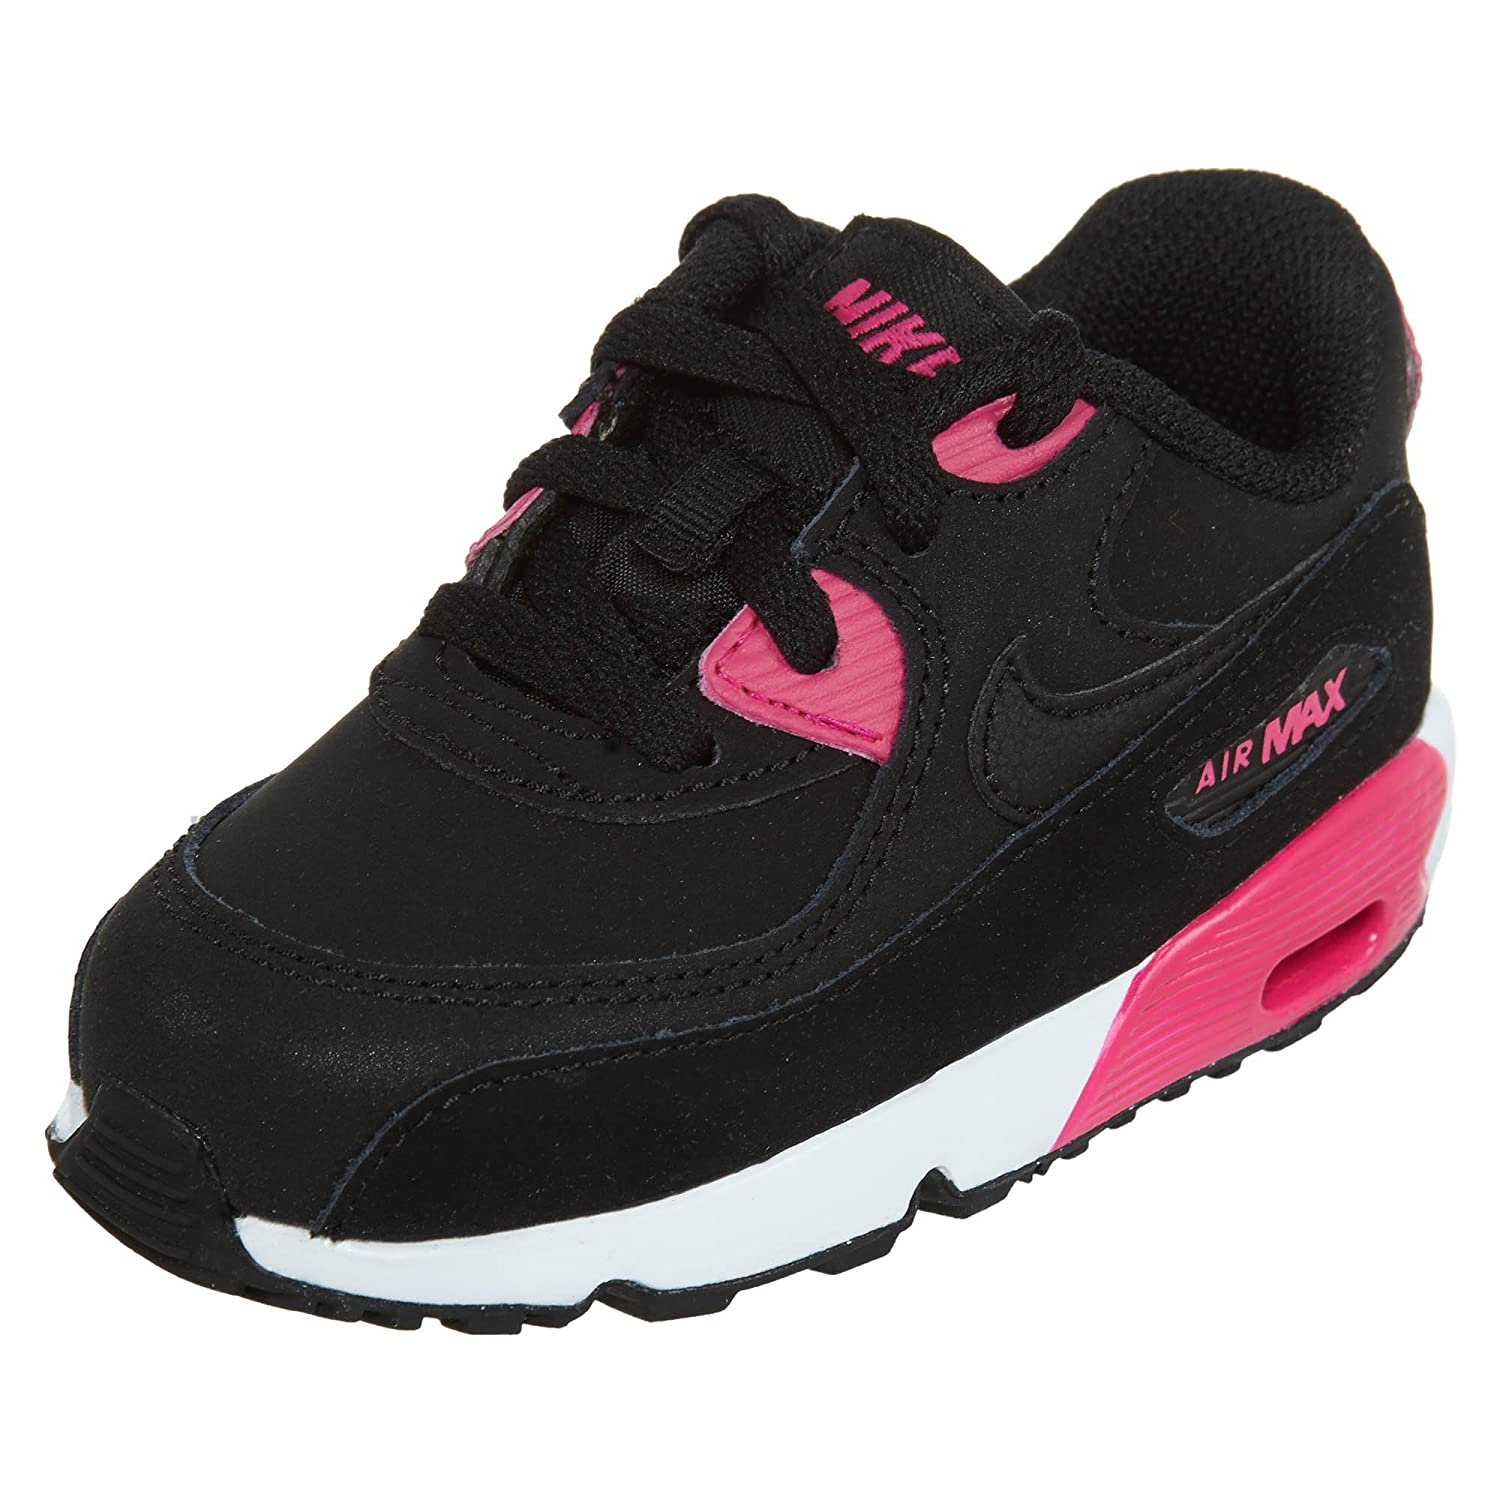 Nike Air Max 90 Toddlers Running shoes Little Kids 833379 003